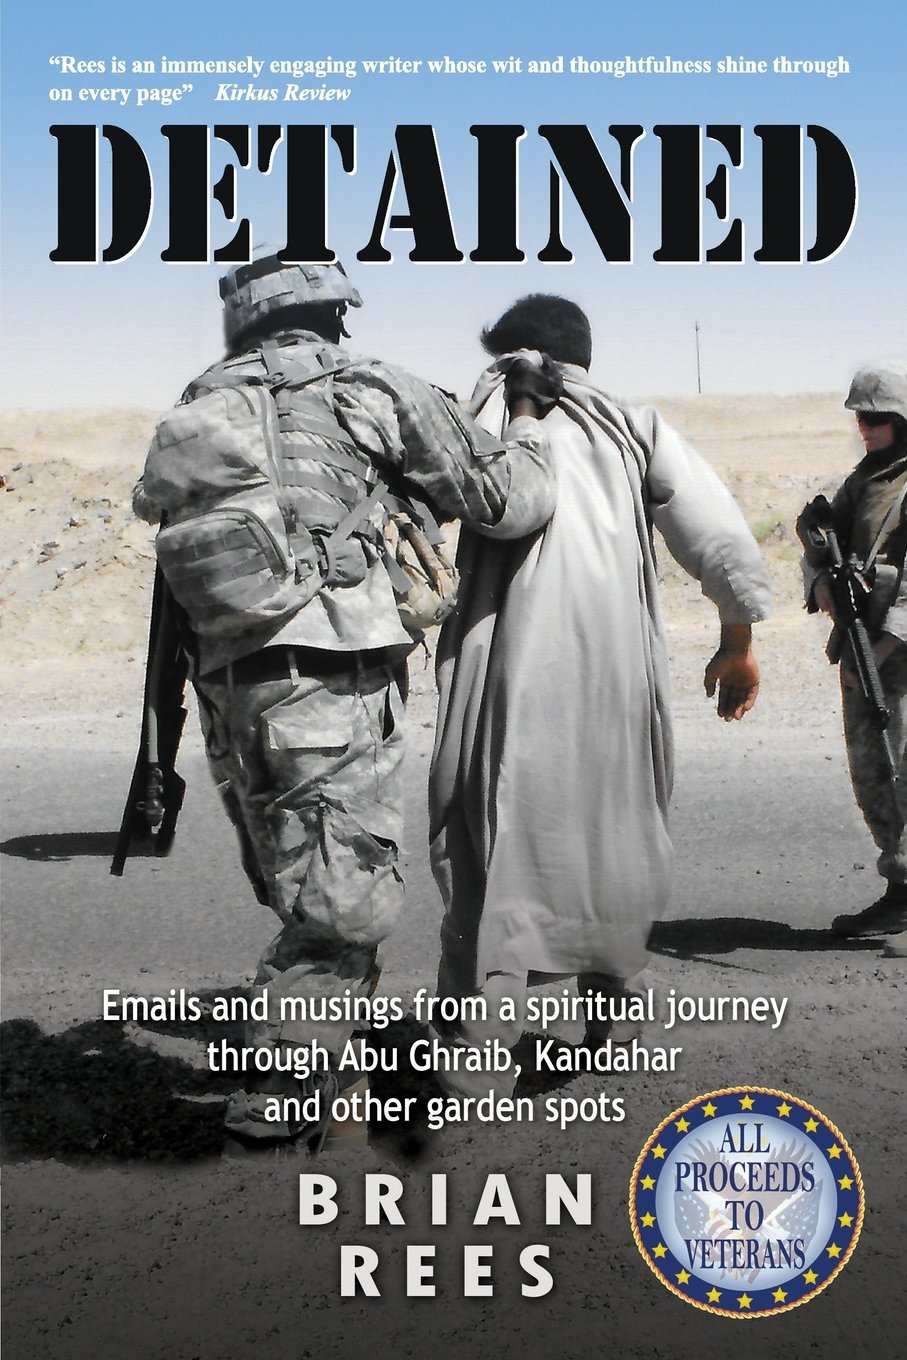 Detained: Emails and musings from a spiritual journey through Abu Ghraib, Kandahar and other garden spots